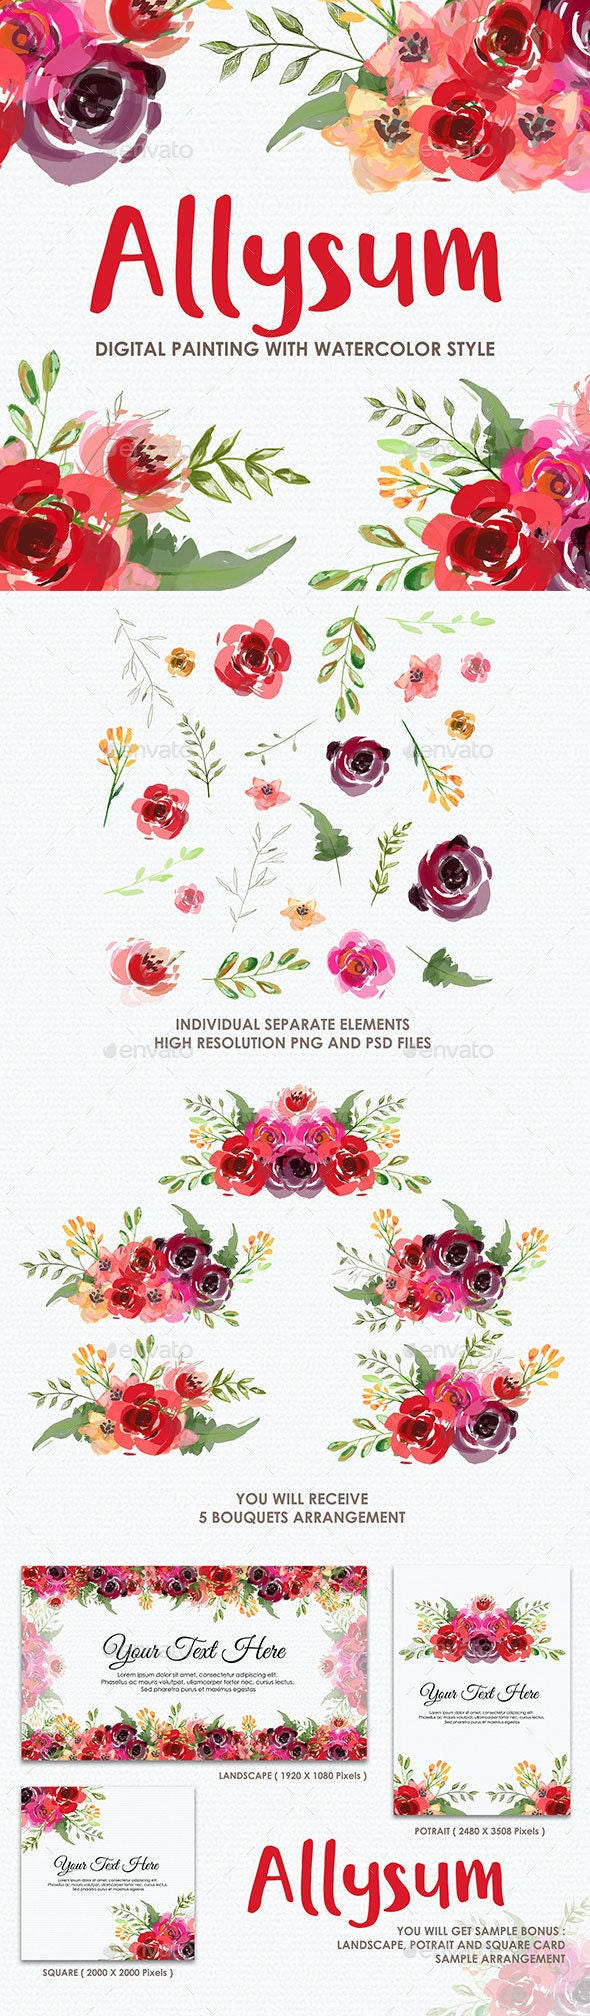 Allysum - Watercolor Digital Painting Floral Flowers Style - Decorative Graphics